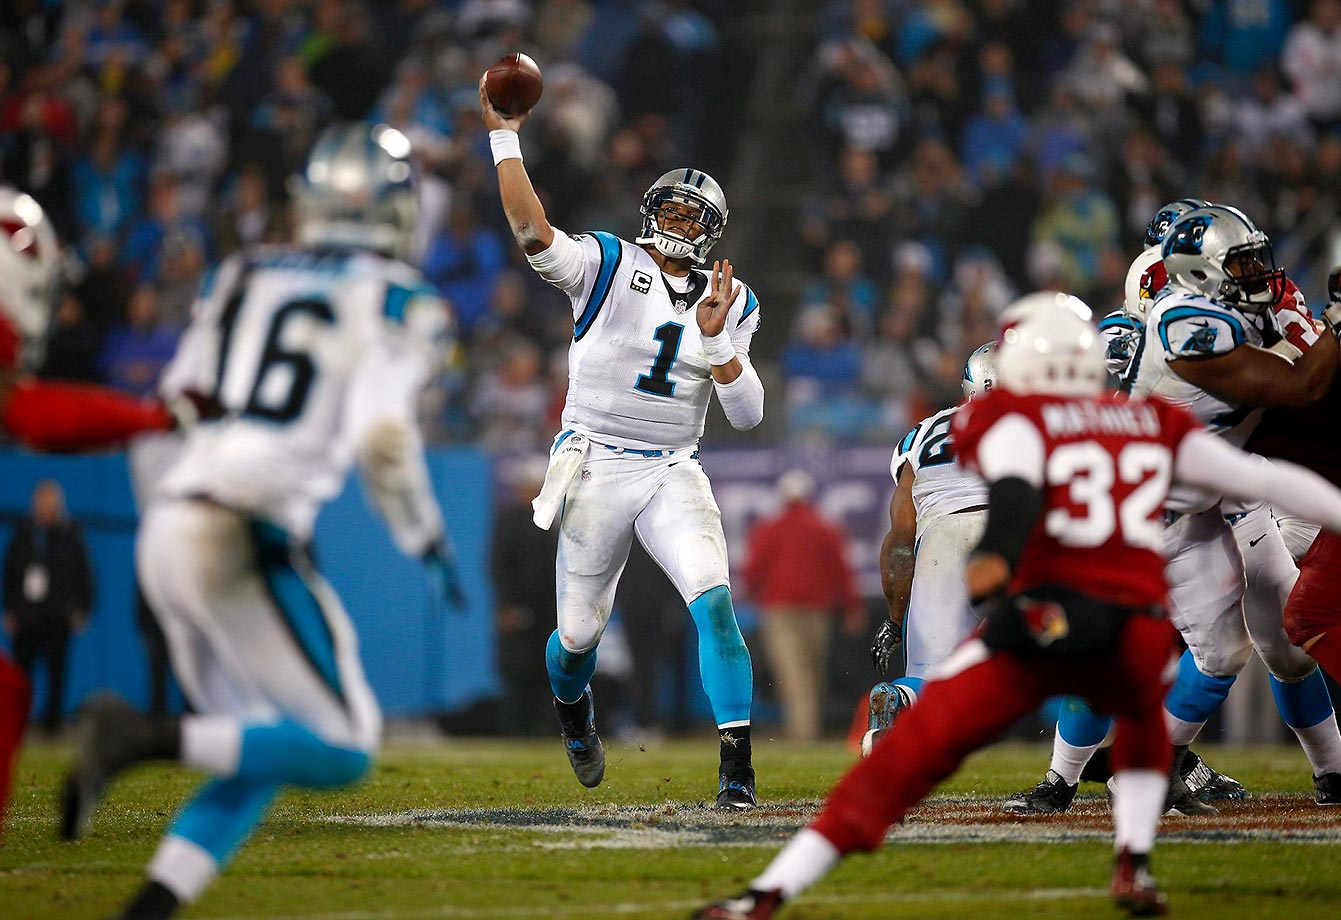 Cam Newton throws a pass in the wild card round of the 2014 NFL playoffs against the Arizona Cardinals. The Panthers won 27-16 as Newton threw for two touchdowns and one interception and added 35 rushing yards.                                                               Text credit: Daniel Hersh